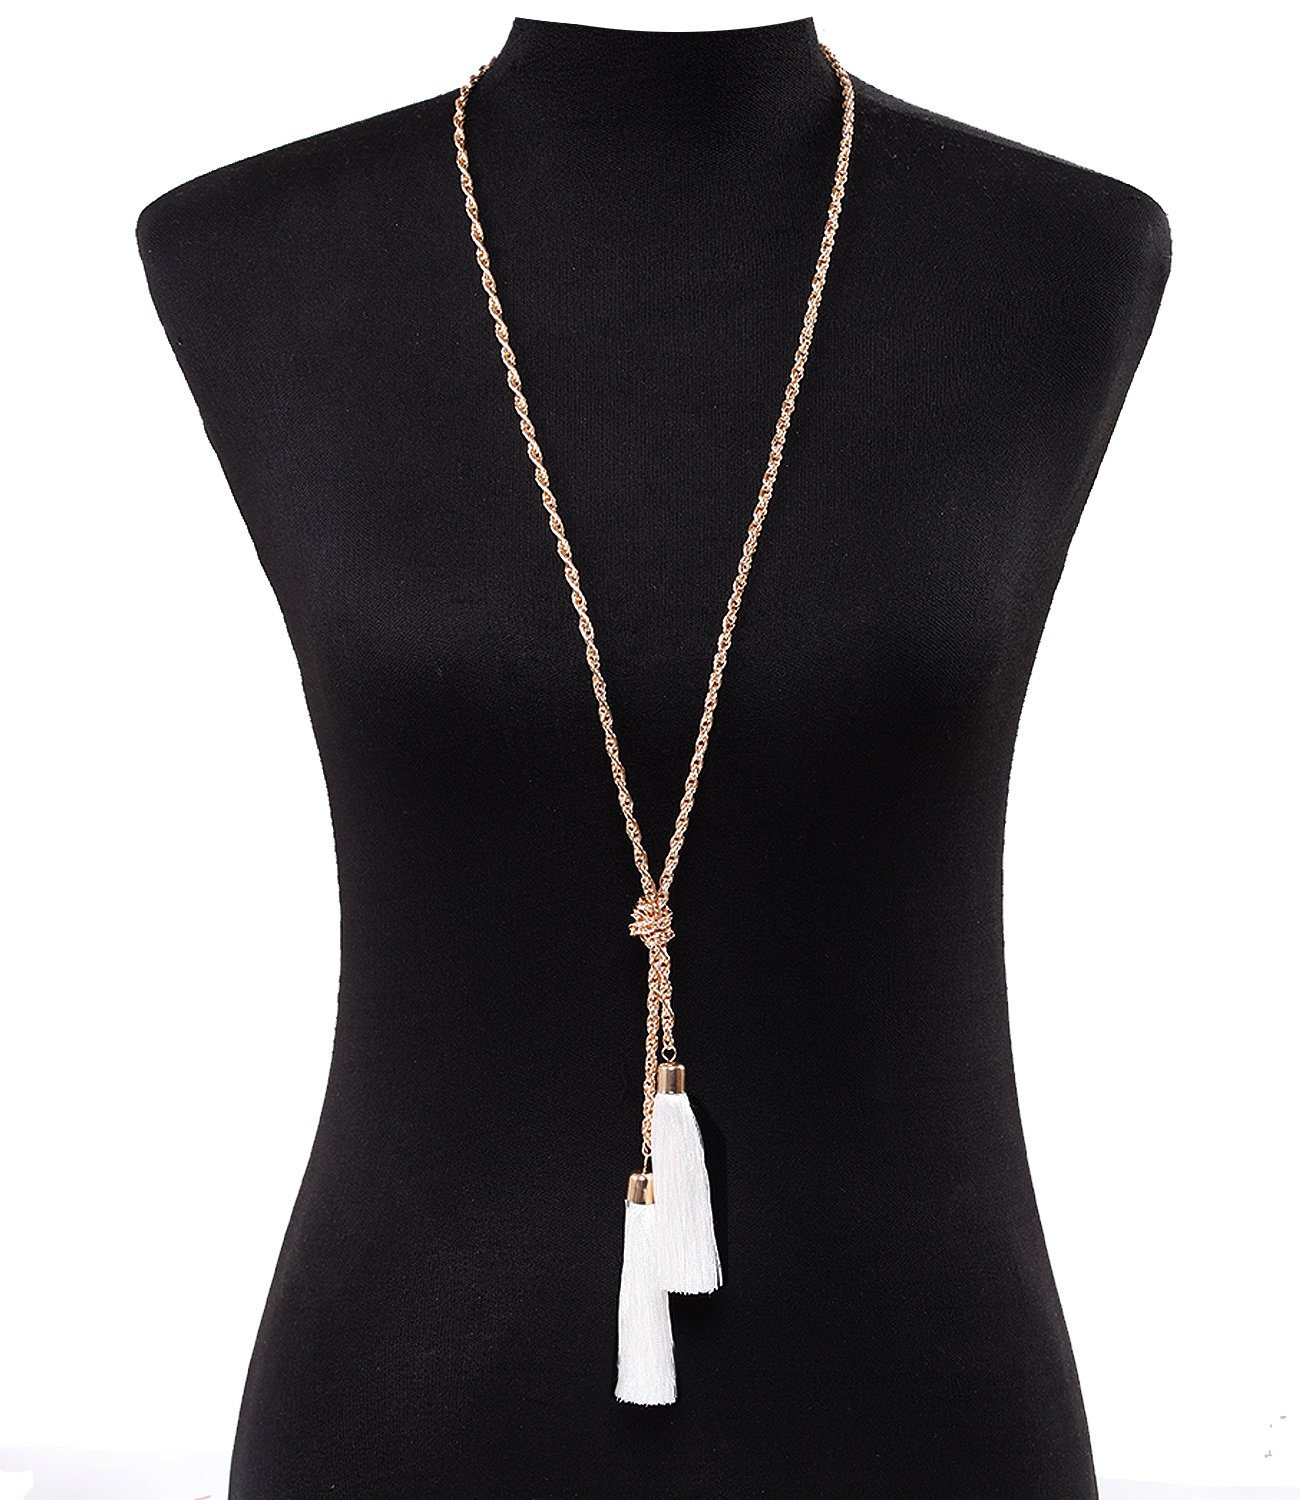 Lariatneck Long Tassel Necklace Y Shaped Adjustable Knot Chain Tassel Pendant for Women (Gold White)